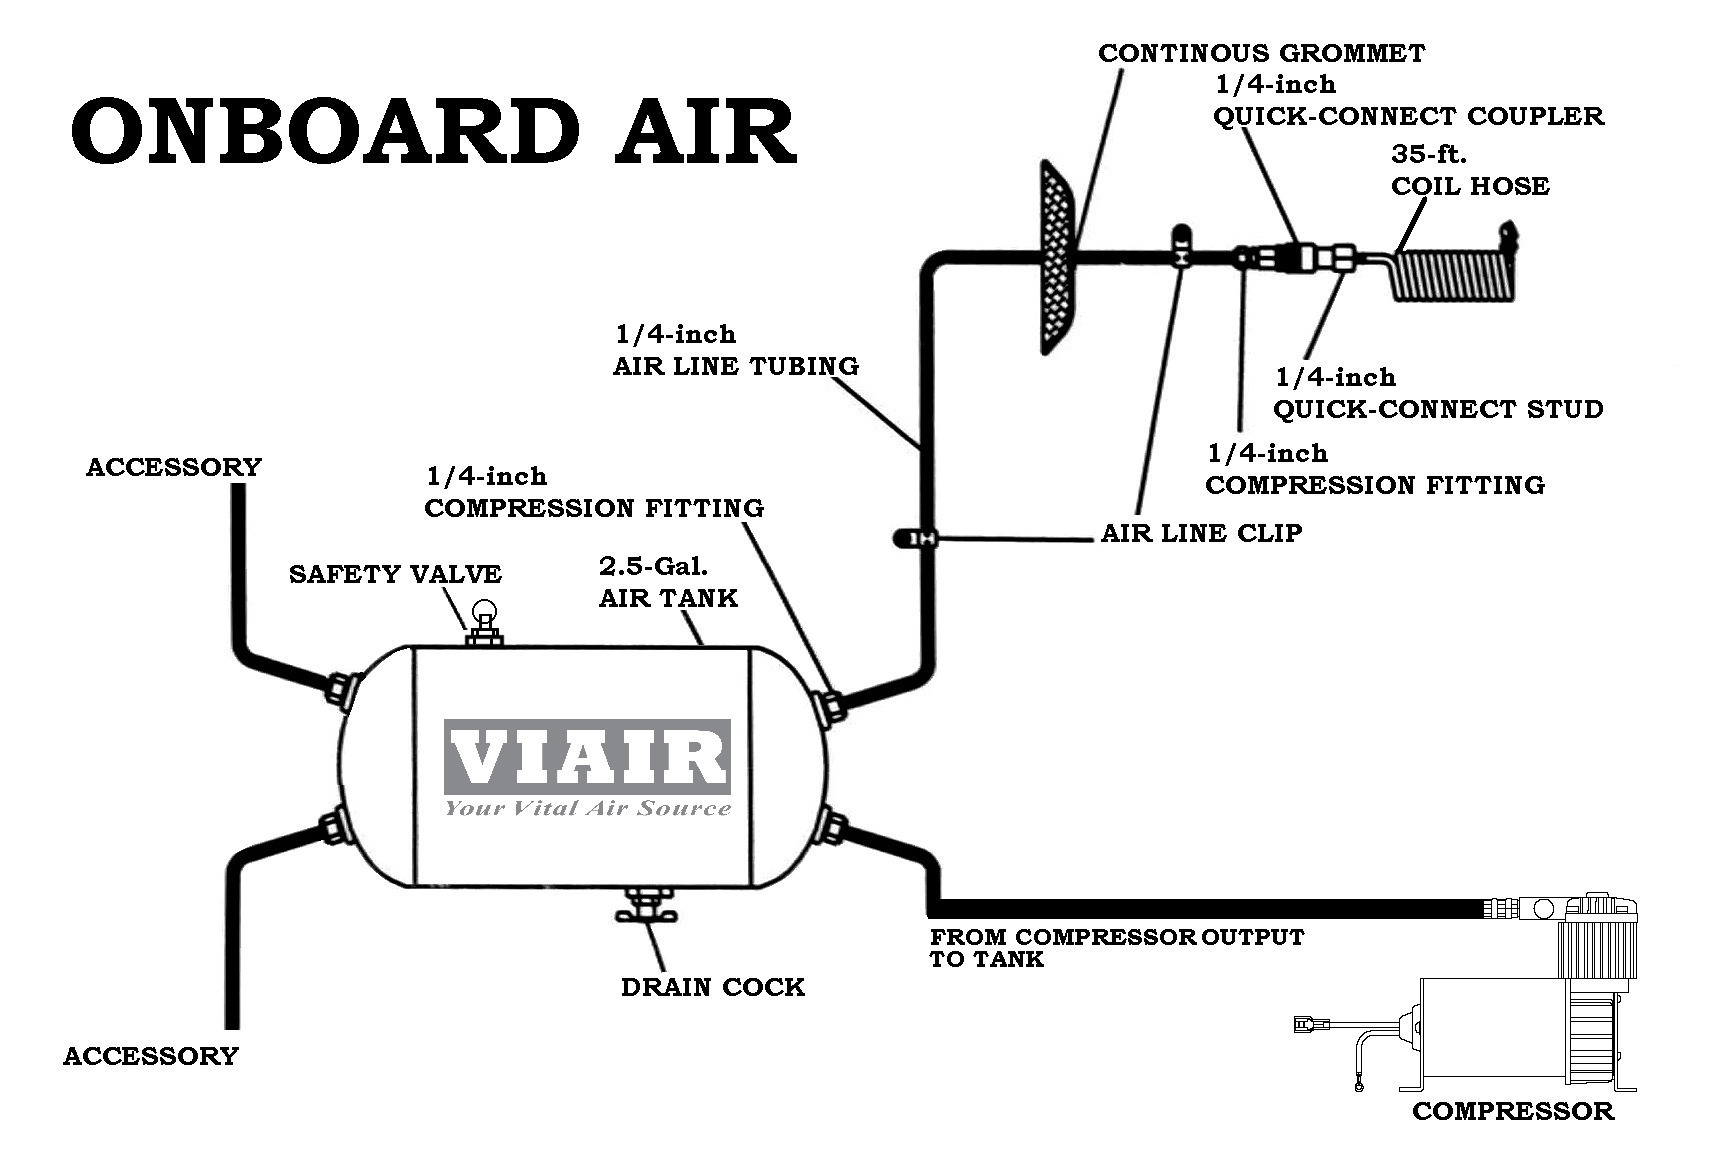 onboard_air air compressor wiring diagram schematic air compressor motor air compressor wiring harness at webbmarketing.co